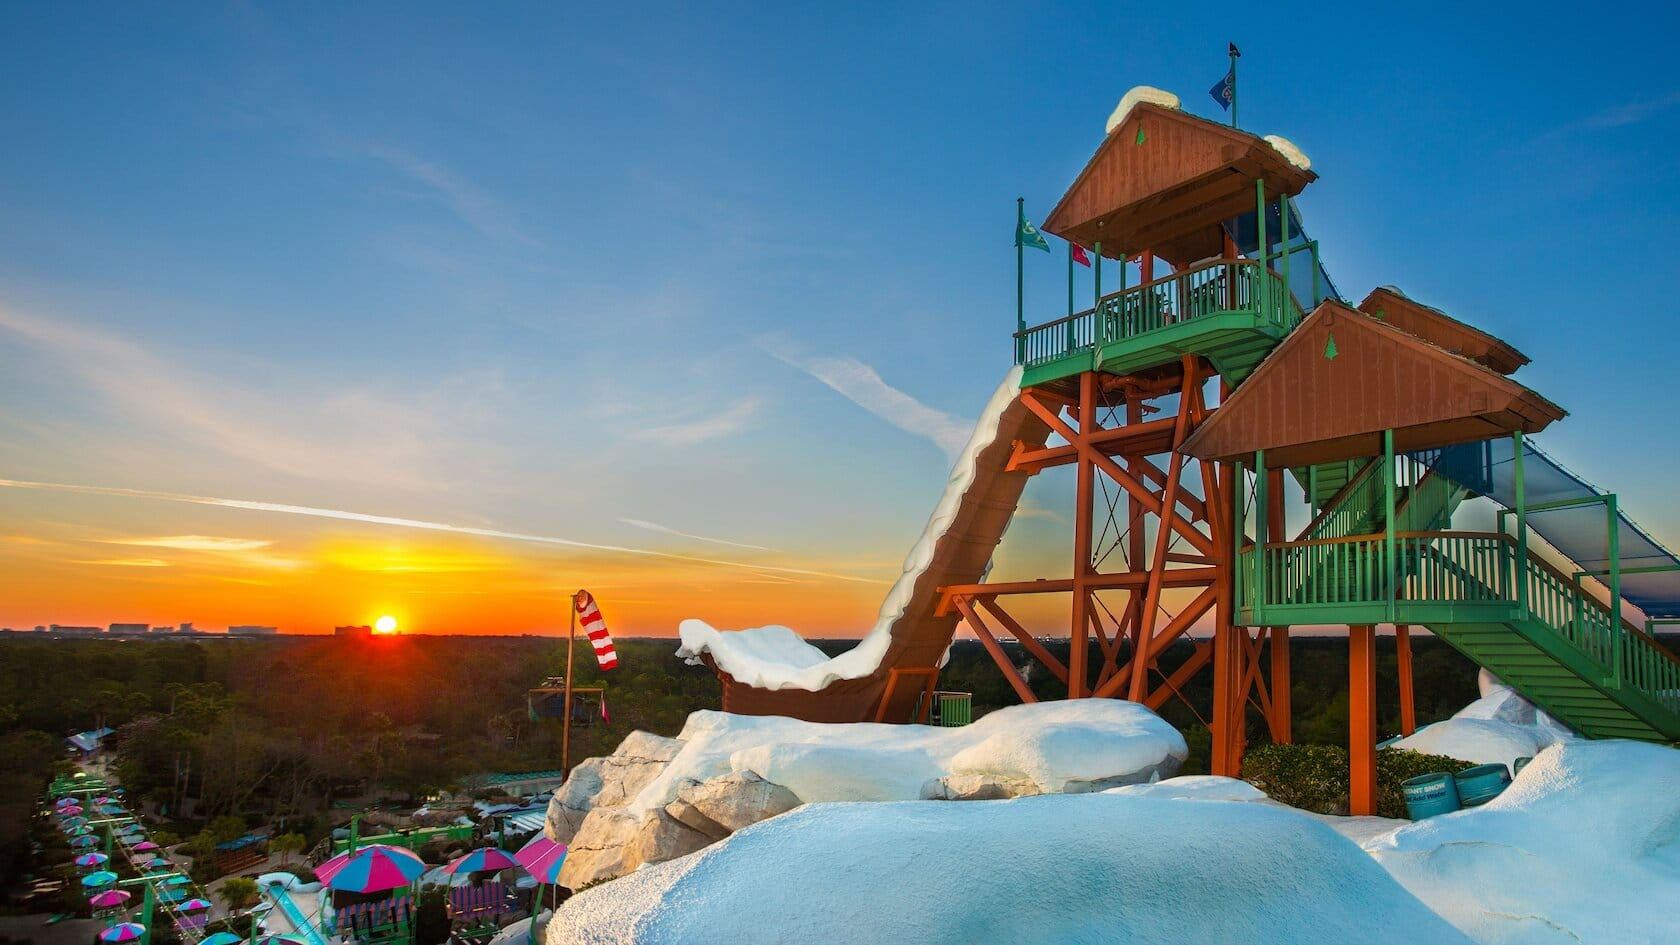 The Essential Guide To Disney's Blizzard Beach Resort